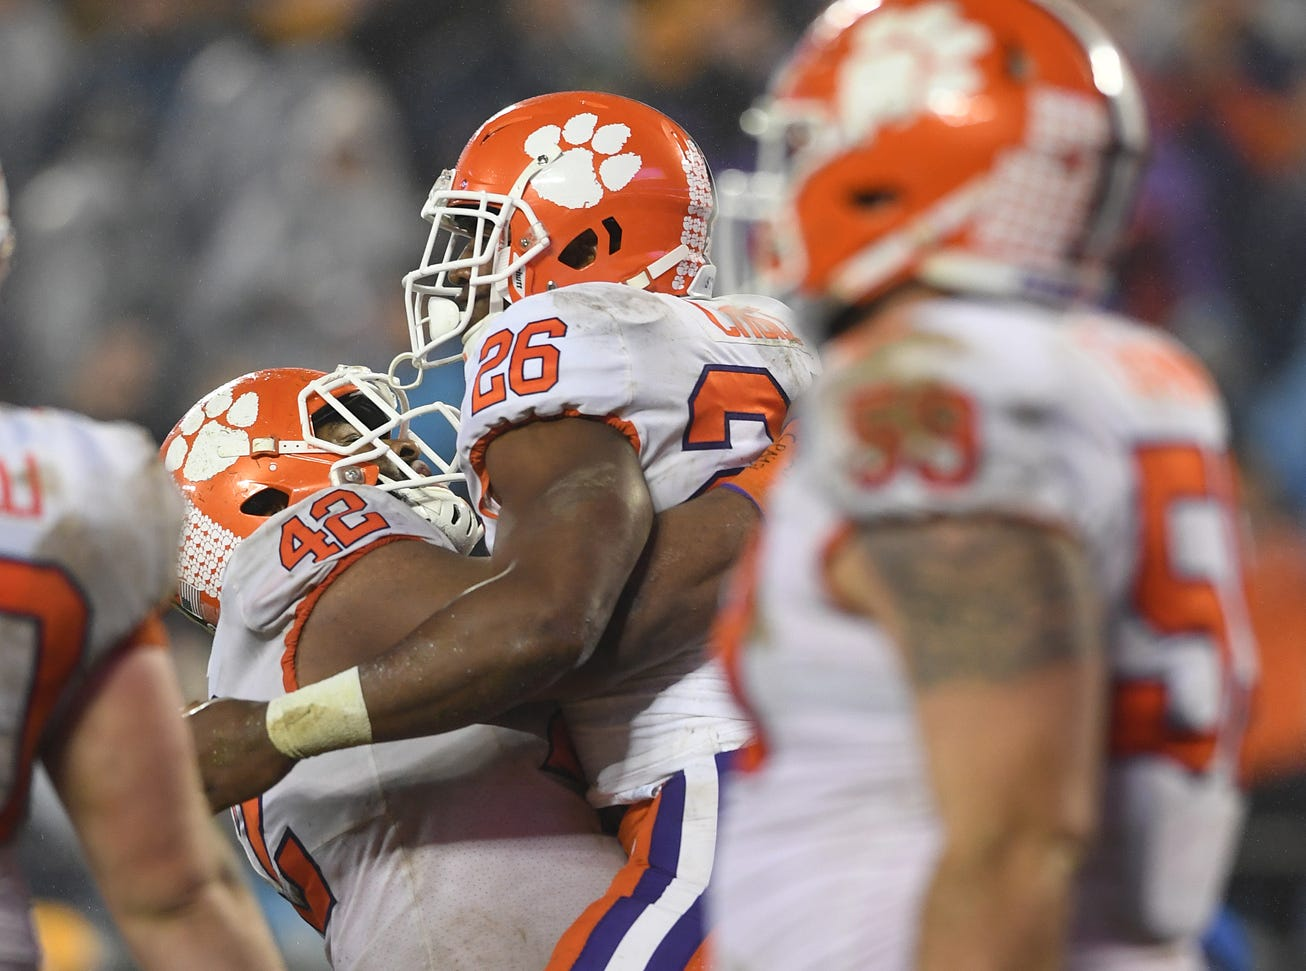 Clemson running back Adam Choice (26) celebrates with defensive lineman Christian Wilkins (42) after scoring against Pittsburgh during the 4th quarter of the Dr. Pepper ACC Championship at Bank of America Stadium in Charlotte, N.C. Saturday, December 1, 2018.